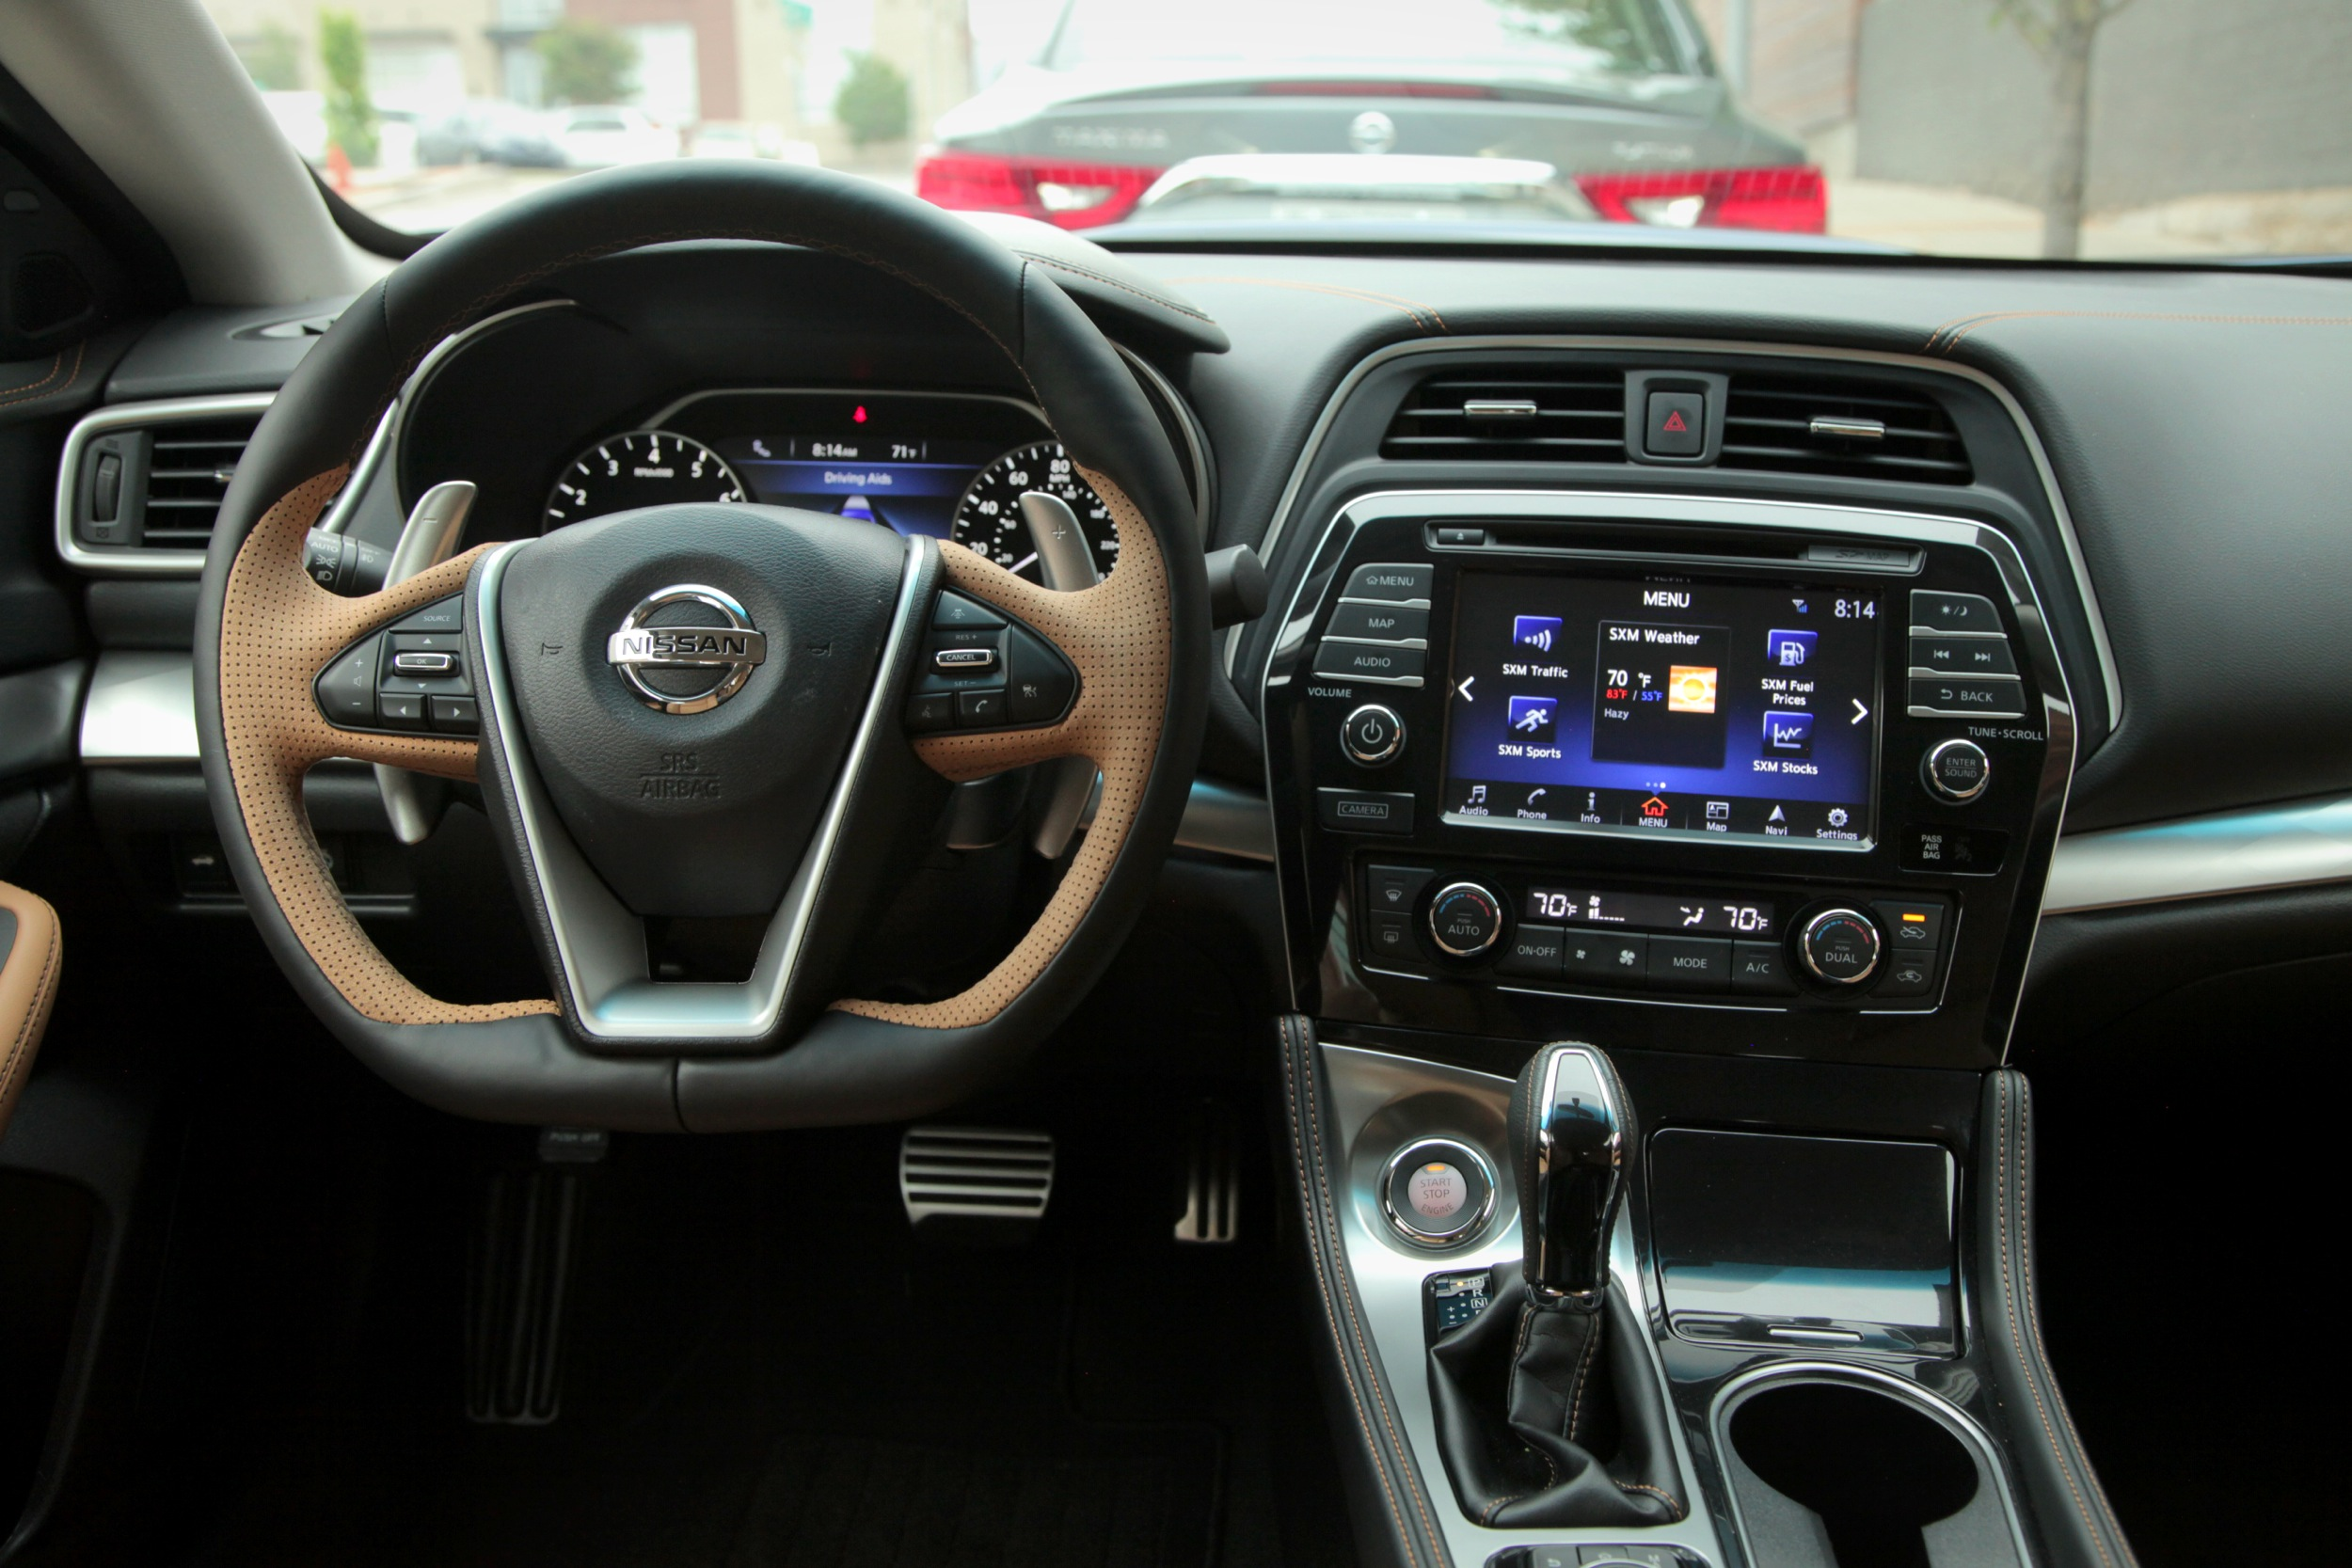 Superb 2016 Nissan Maxima Interior 07 Design Inspirations